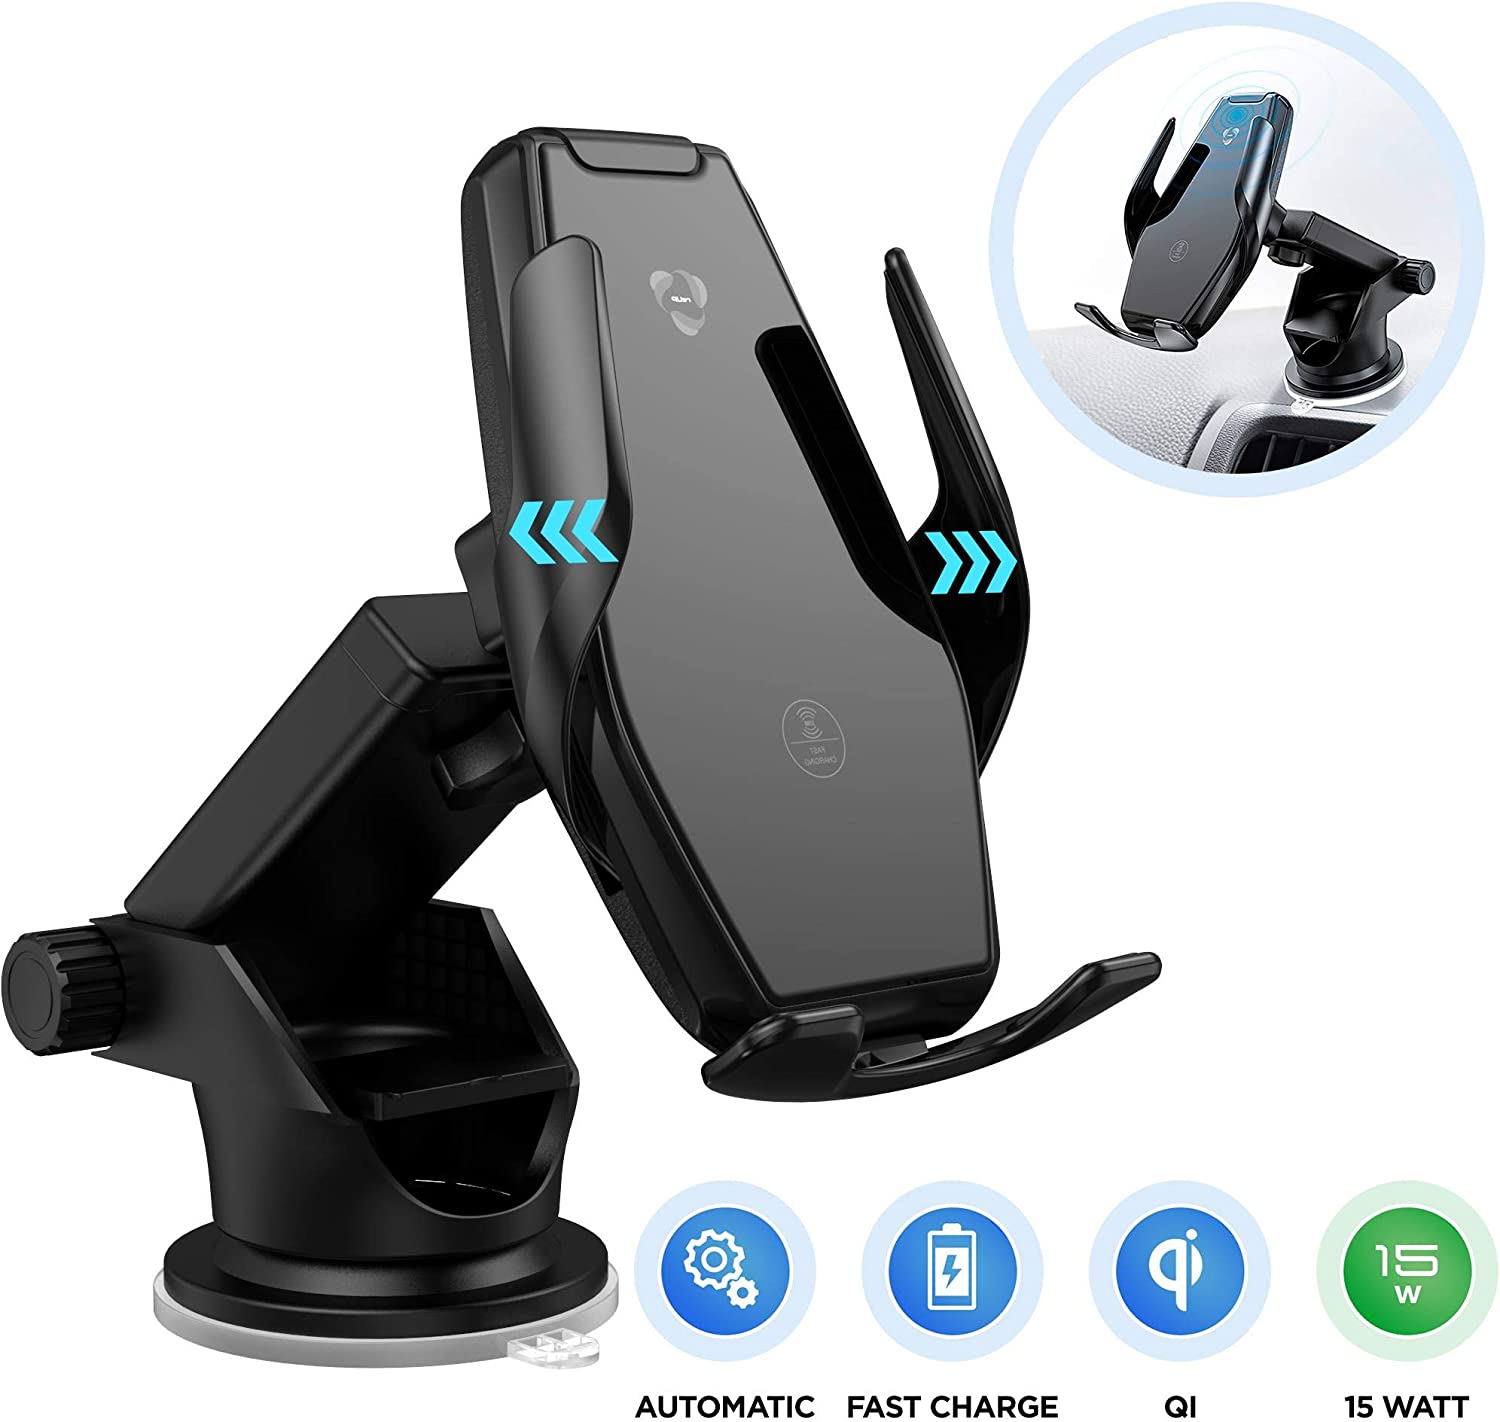 Wireless Car Charger 15W Qi Fast Charging Infrared Sensor Automatic Clamping Mount Windshield Dash Air Vent Holder Dual 3.0A Quick Charge USB Ports Compatible with iPhone Samsung Galaxy LG Smartphone